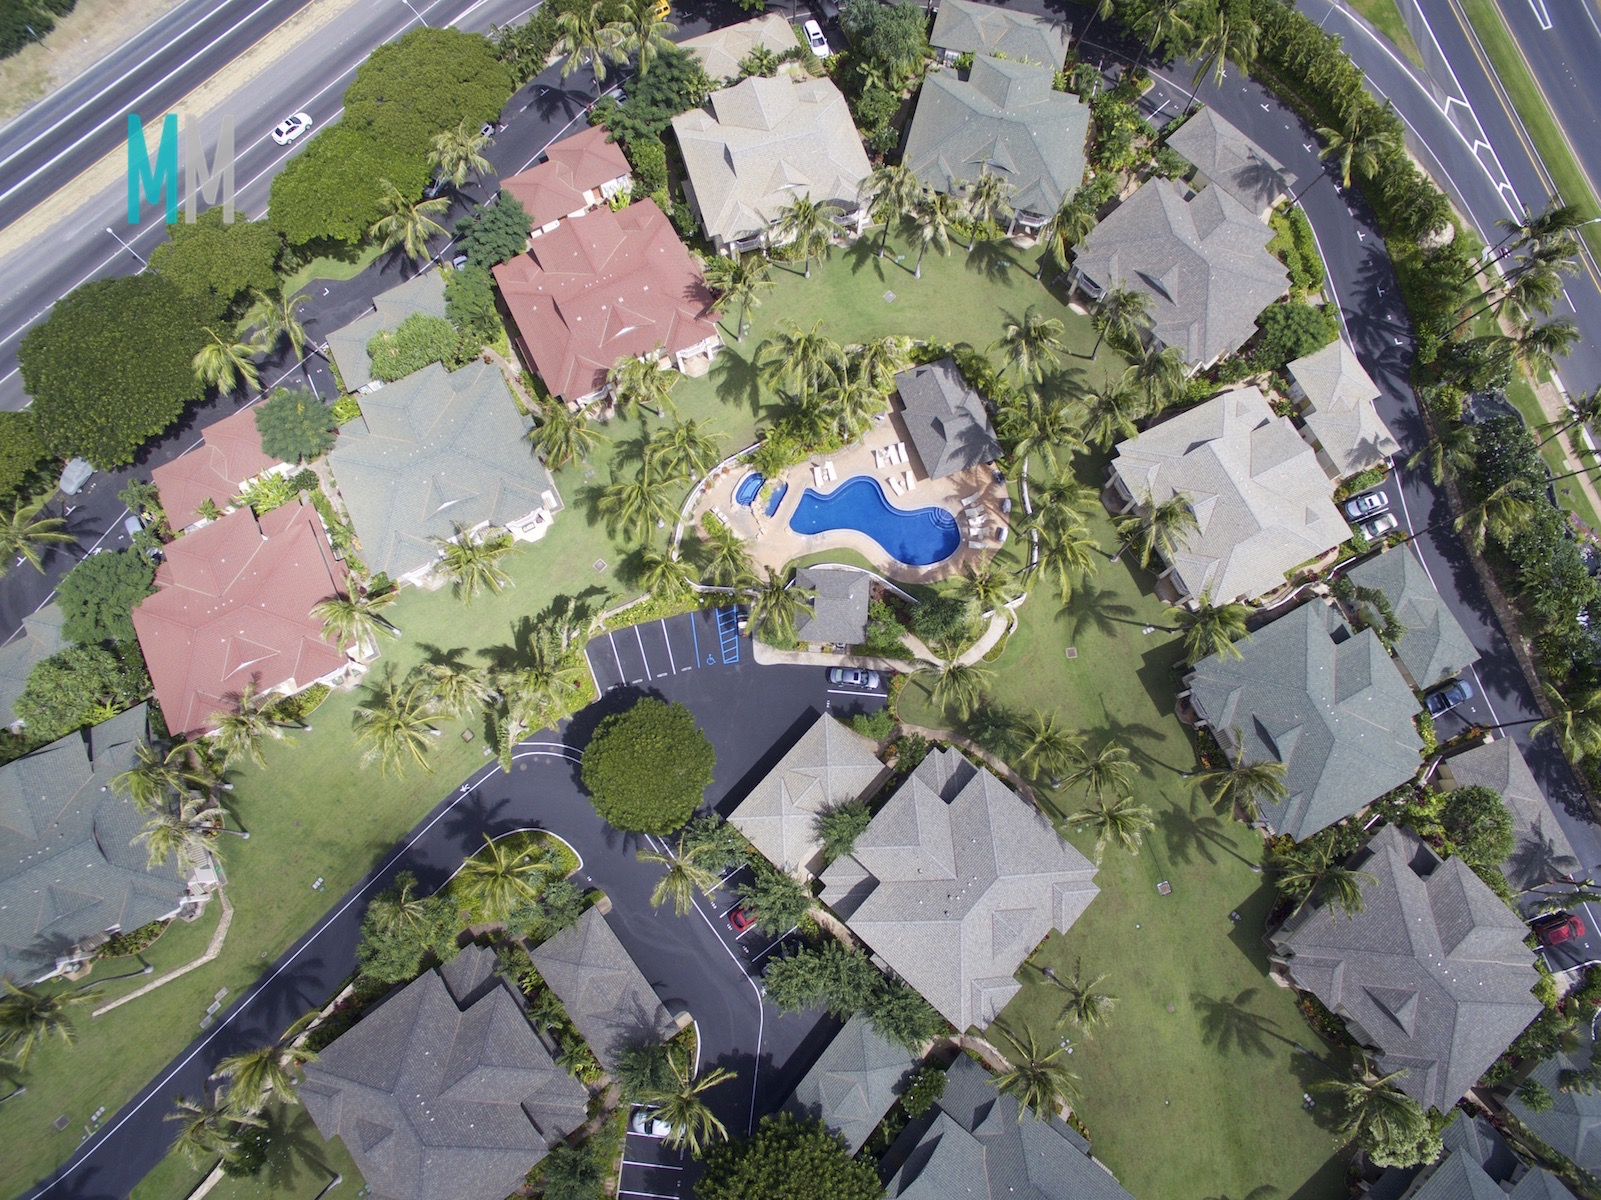 kai-lani-ko-olina-aerial-view-munro-murdock-hawaii-real-estate-dji_0041